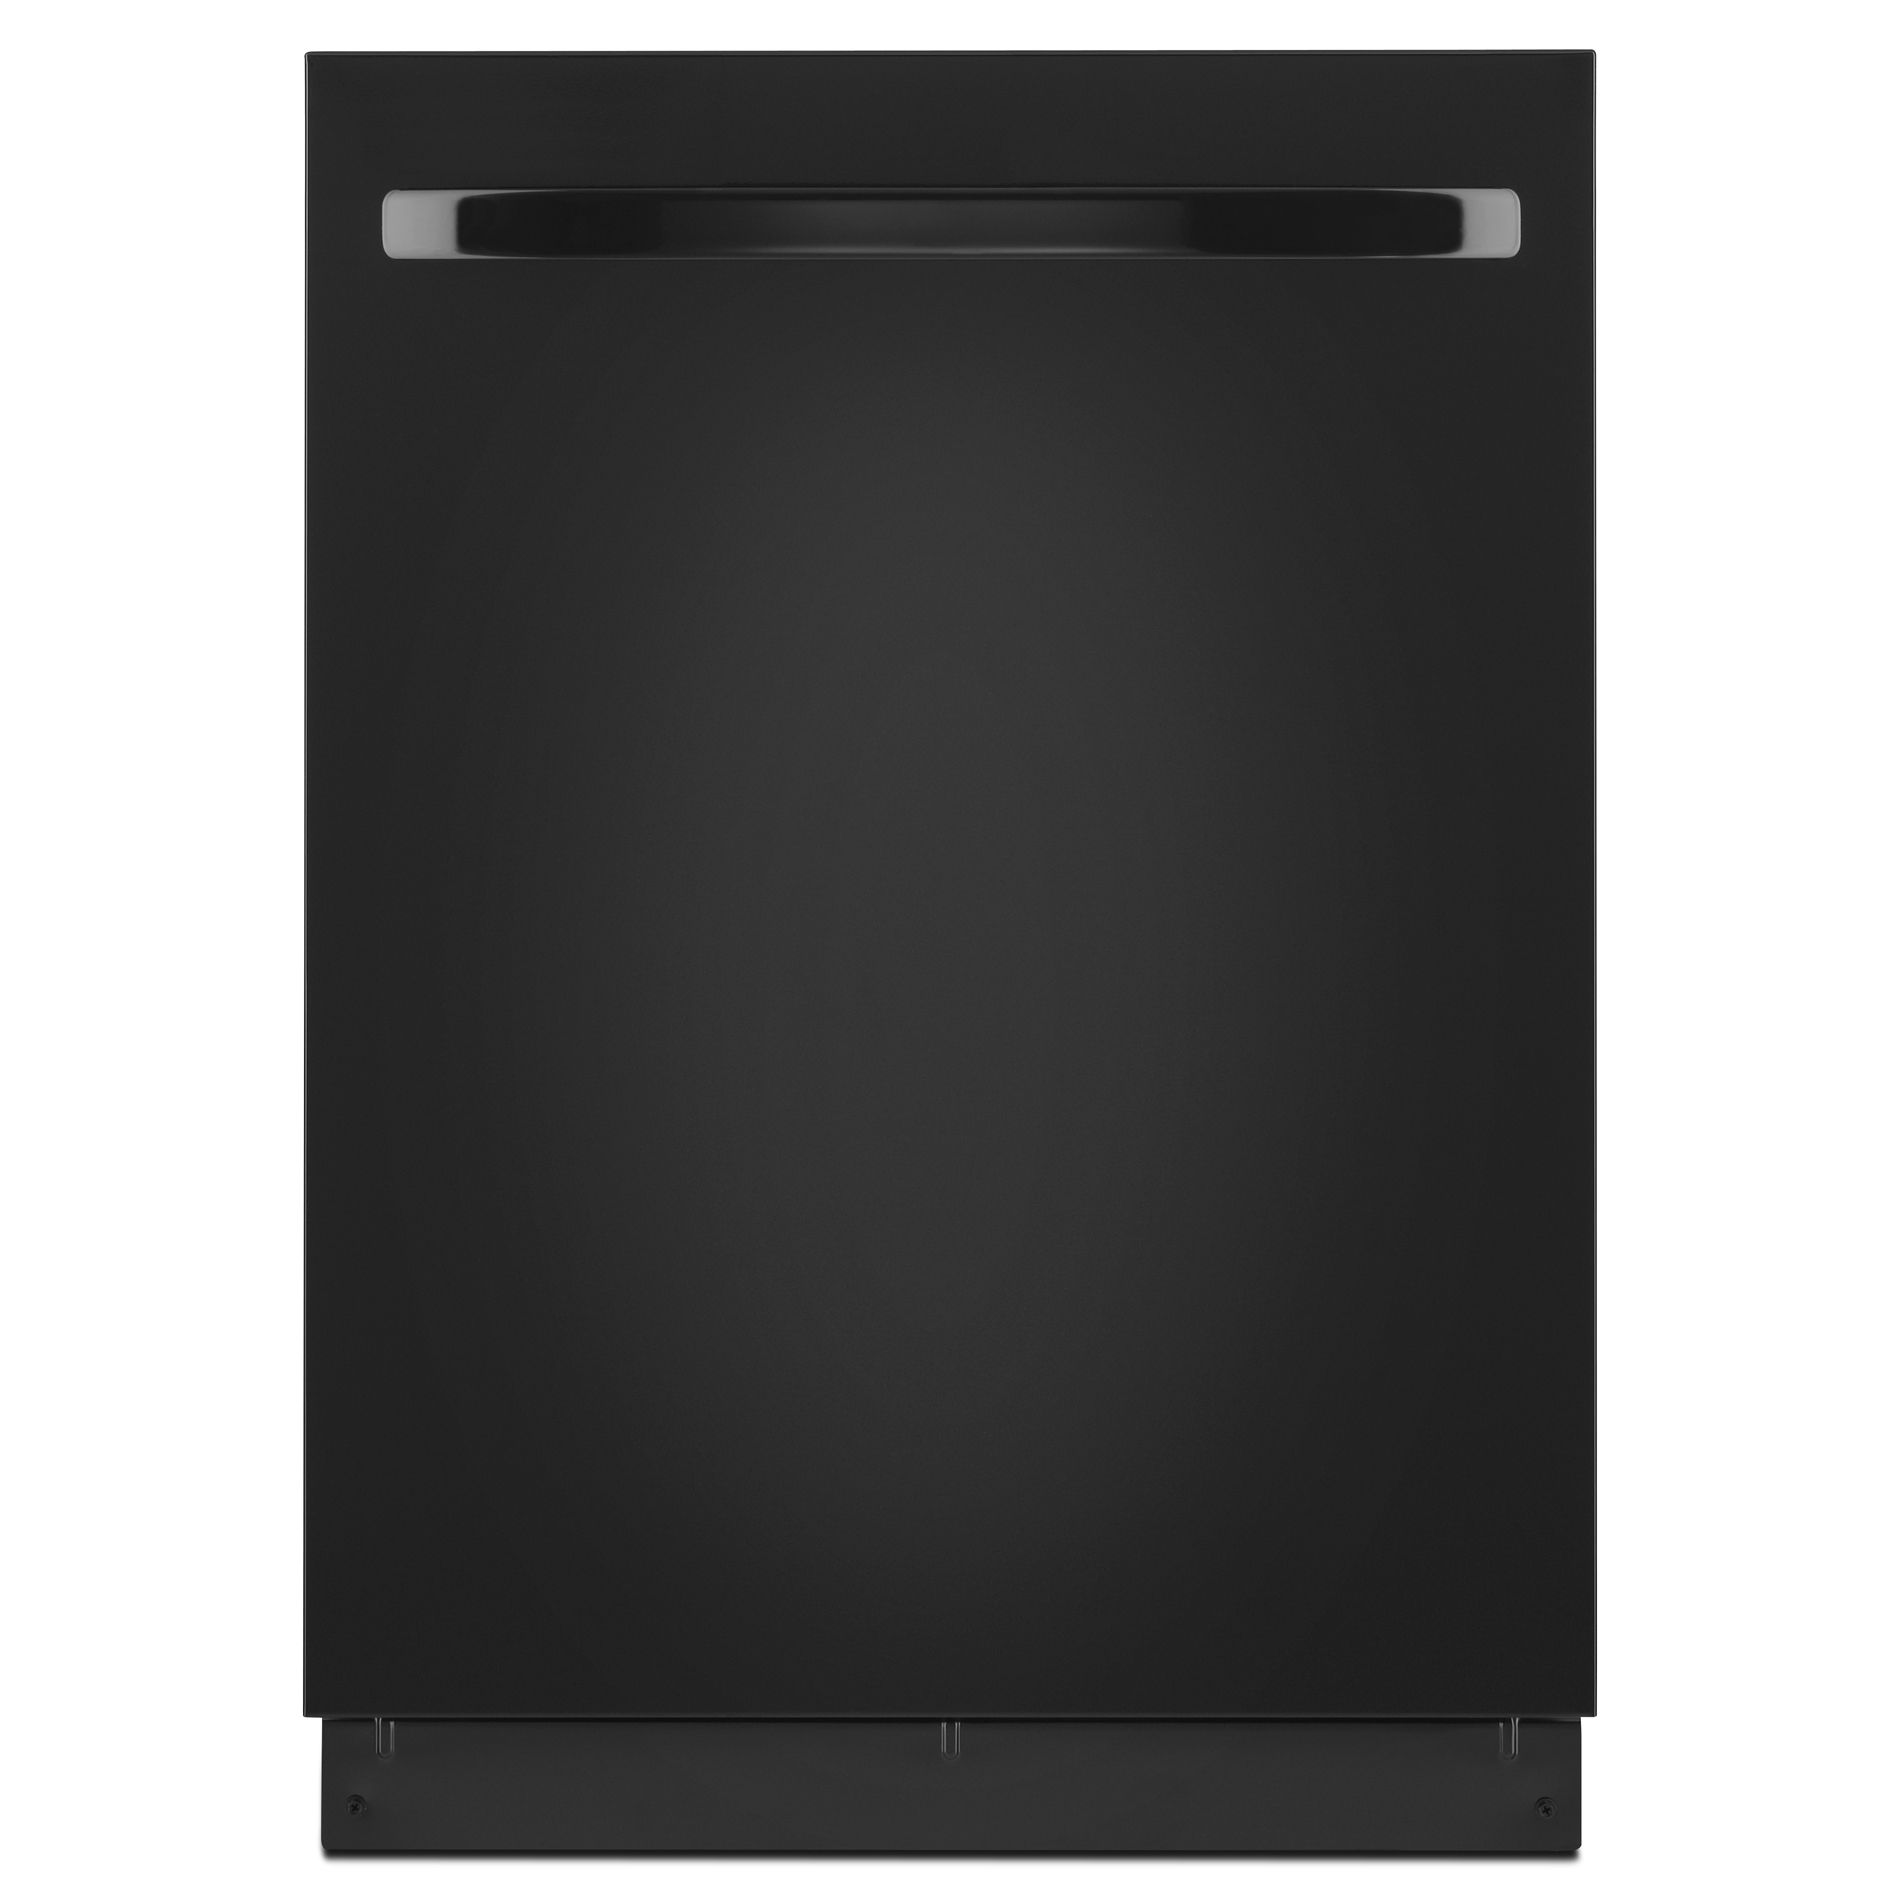 New Kenmore 24 Quot Built In Dishwasher W Turbozone Black